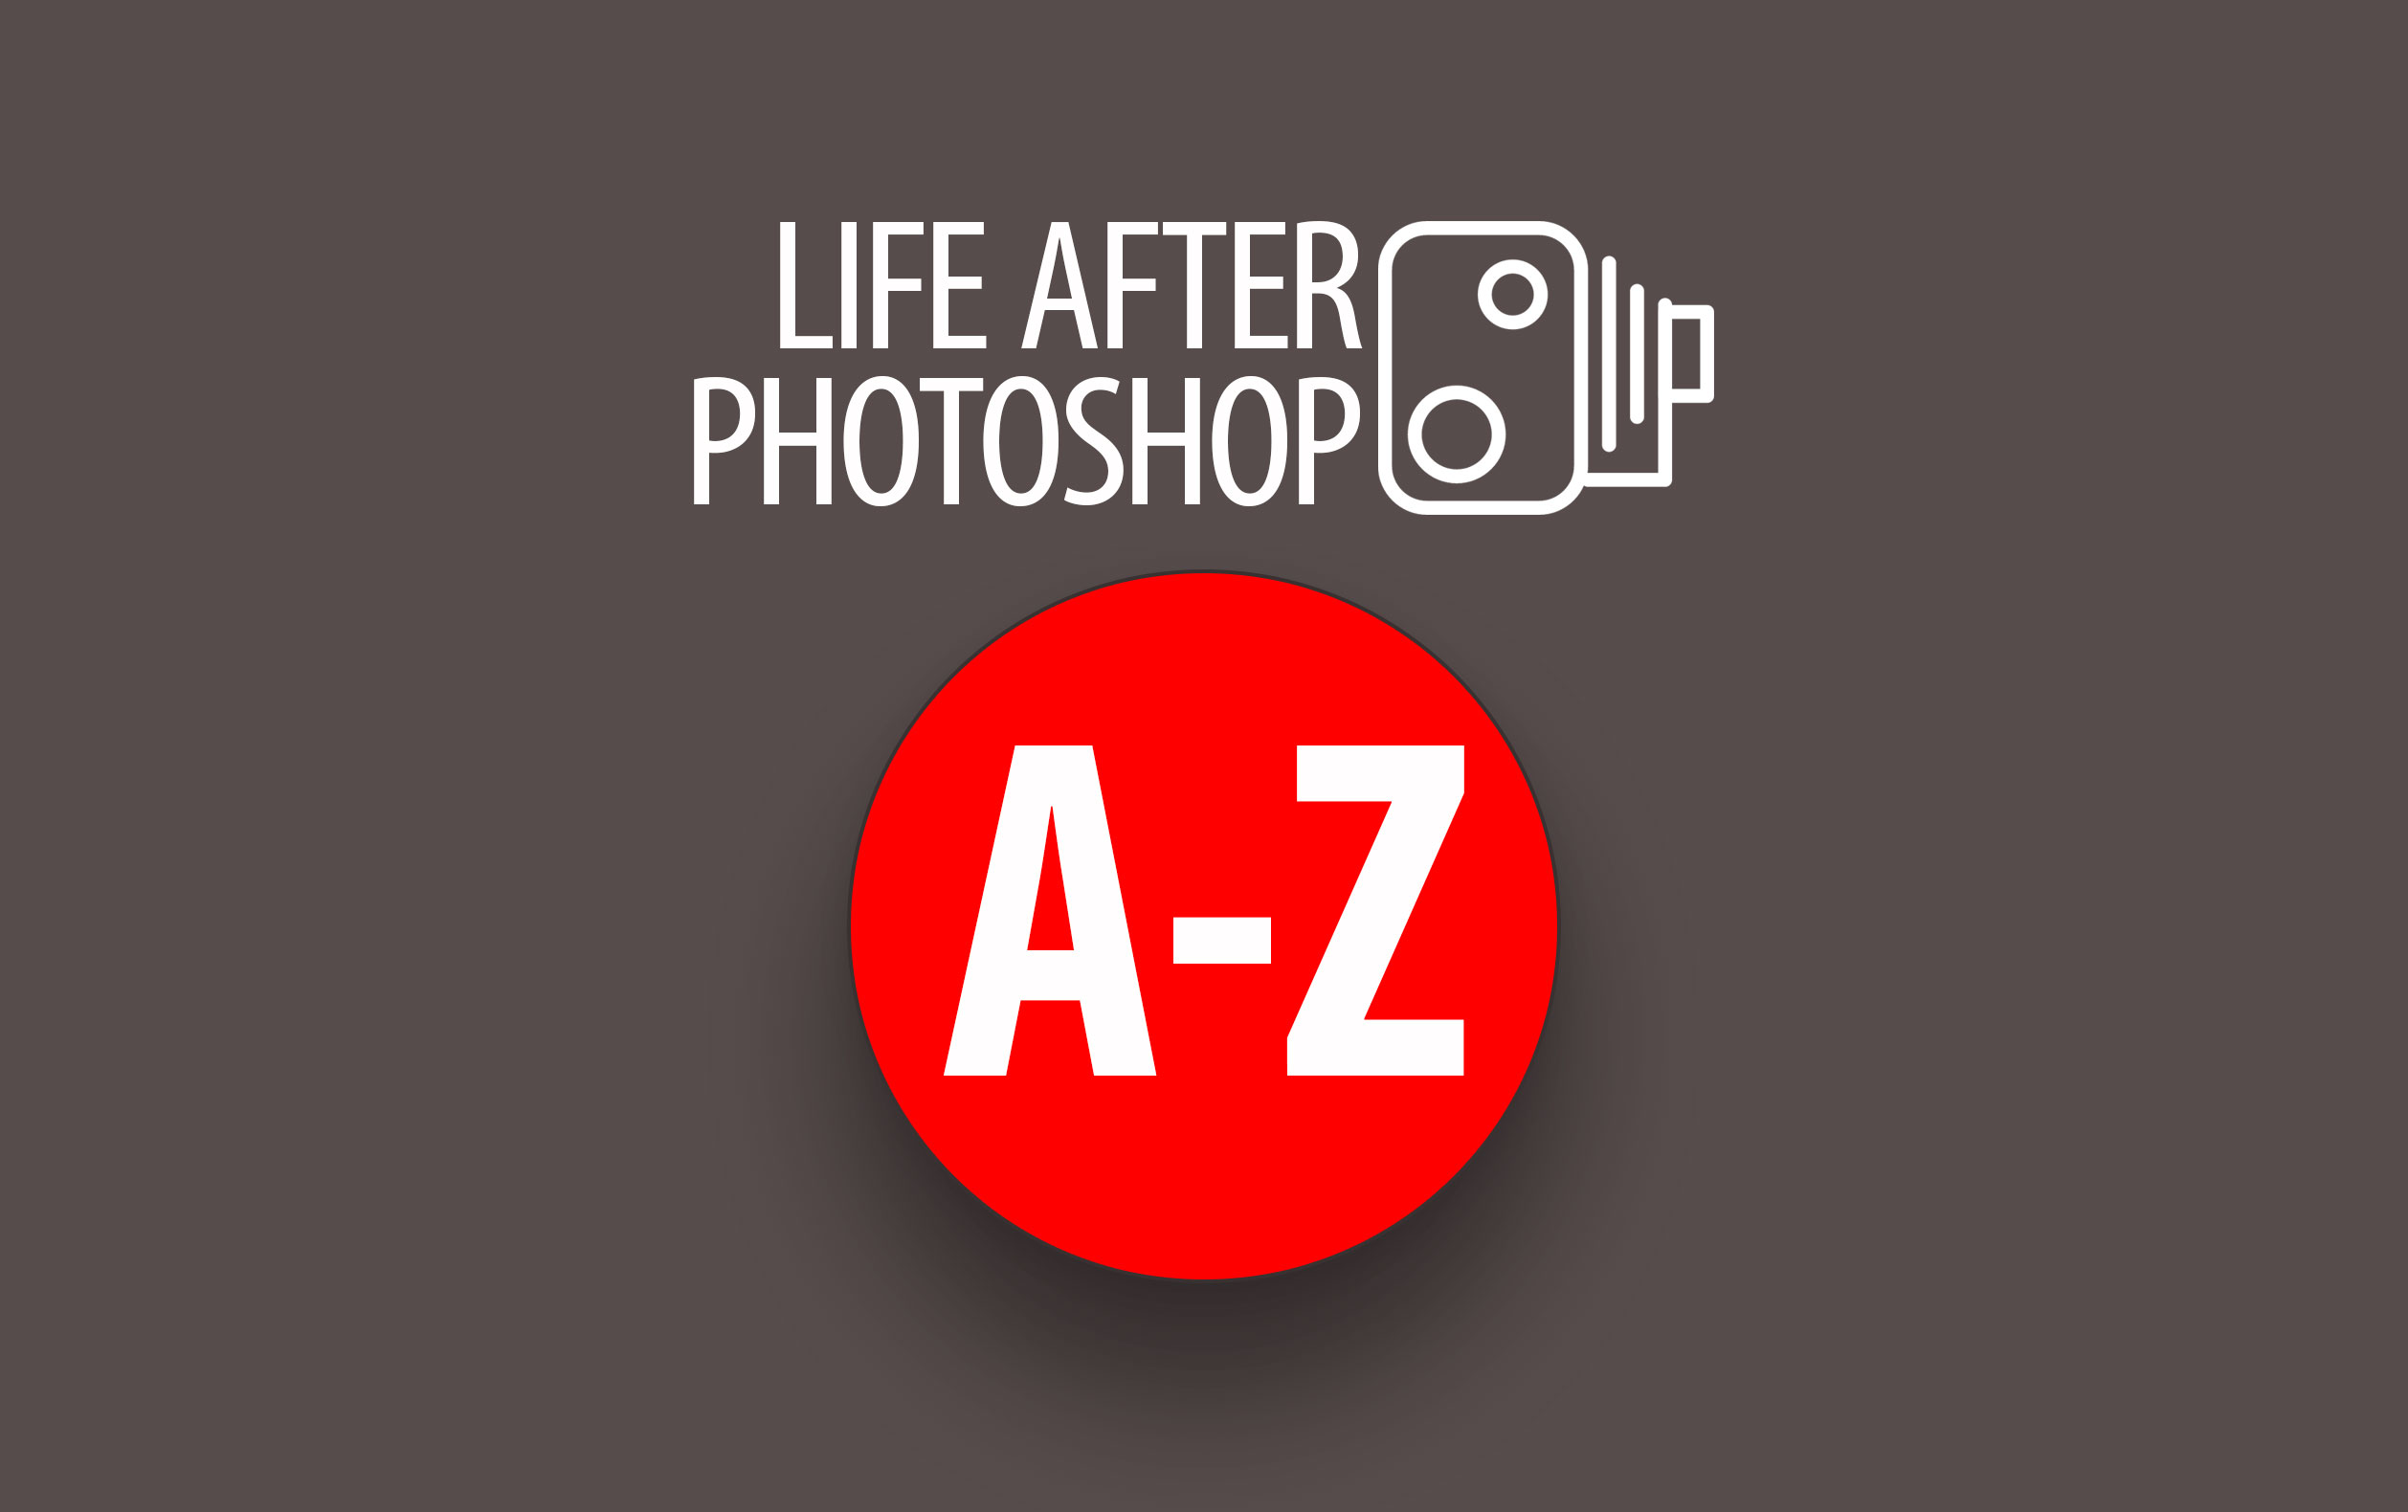 Life after Photoshop A-Z